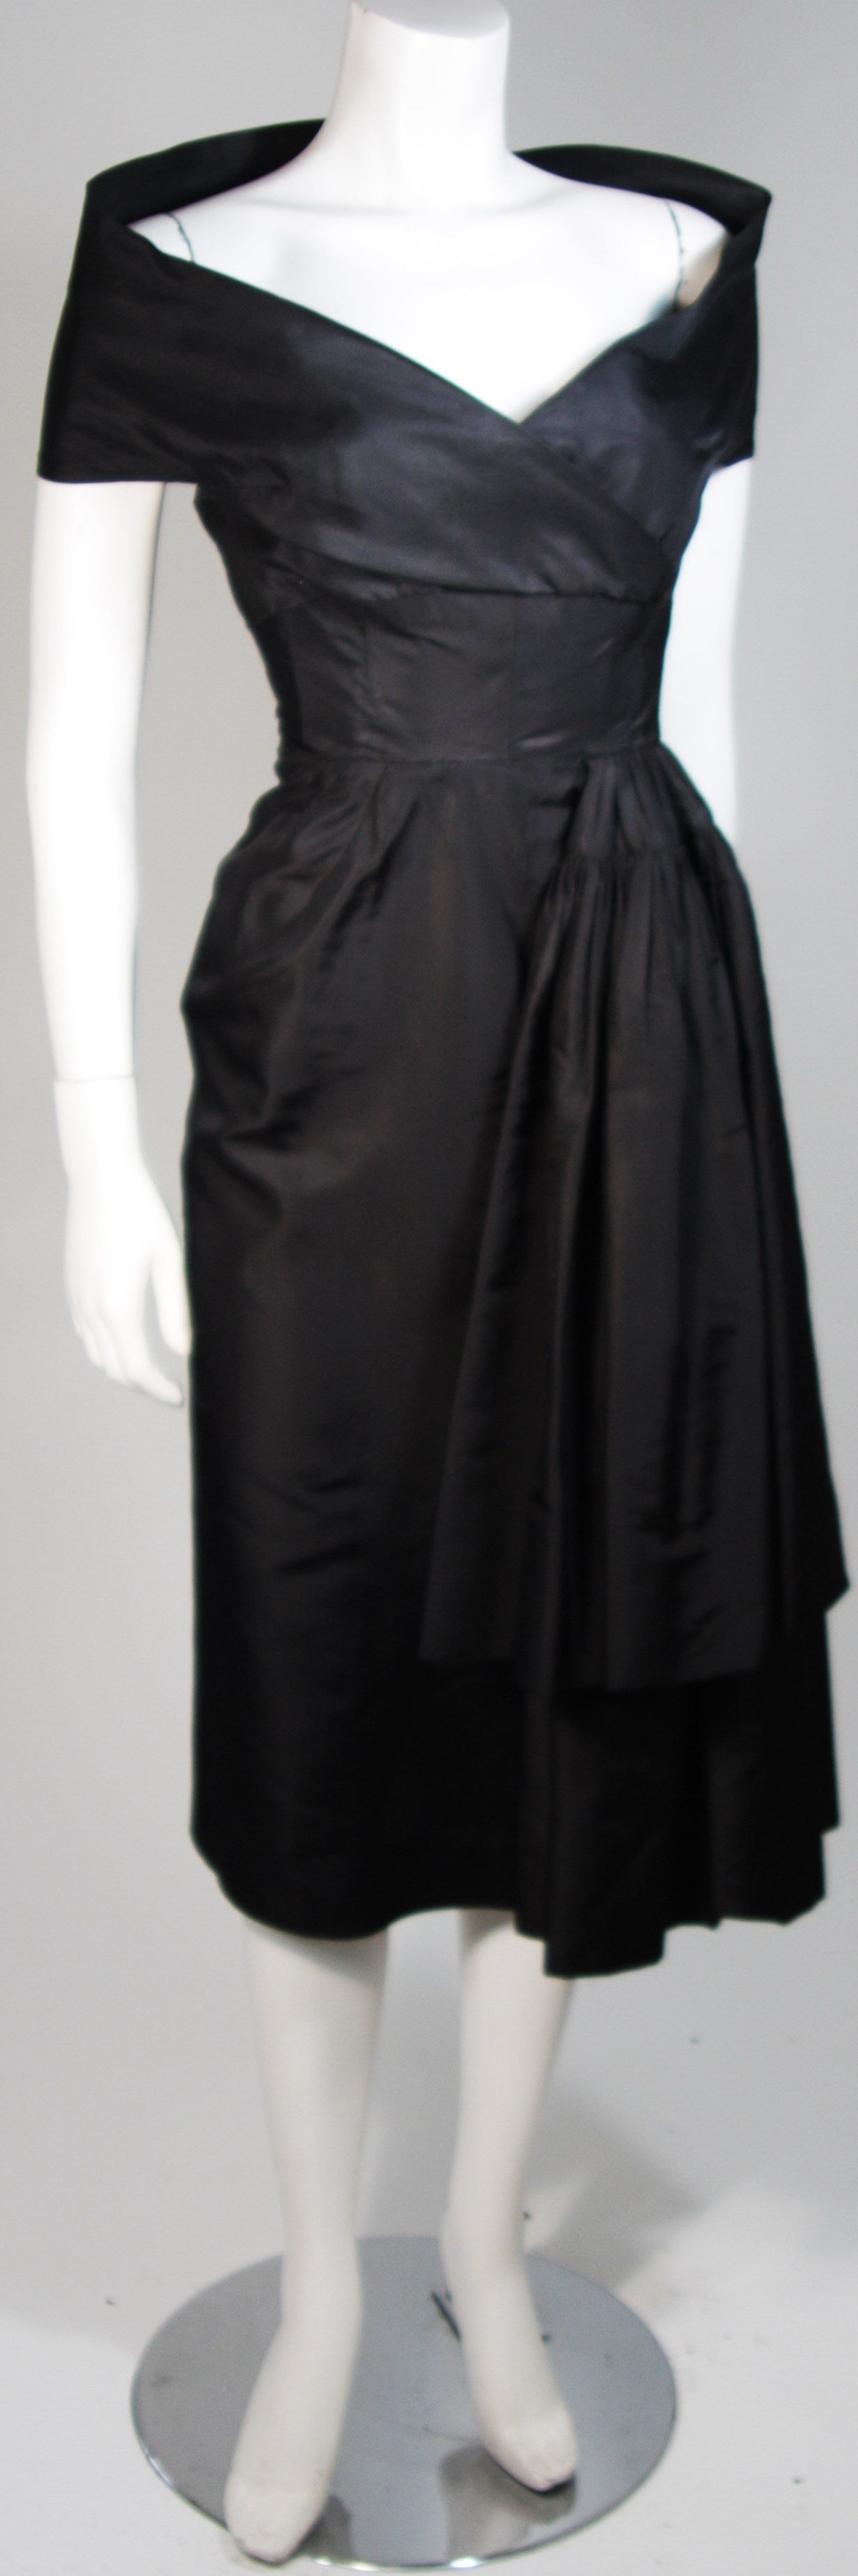 Ceil Chapman Black Cocktail Dress with Draped Detail Size Small 4